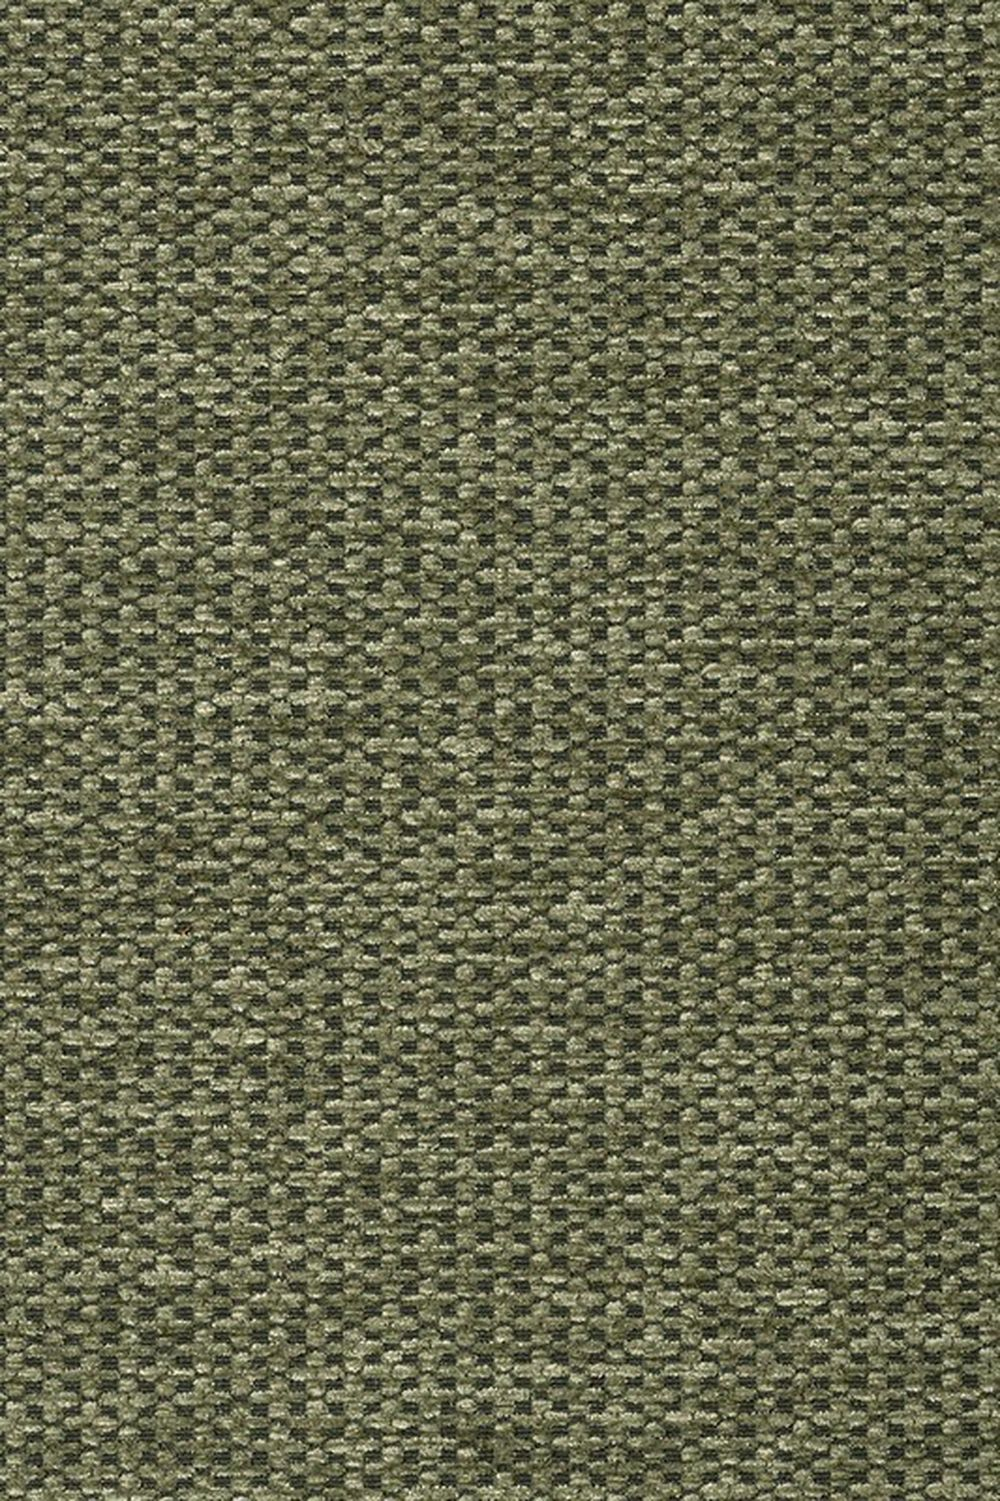 Photo of the fabric Bedford Loden swatch by James Dunlop. Use for Upholstery Heavy Duty, Accessory. Style of Plain, Texture